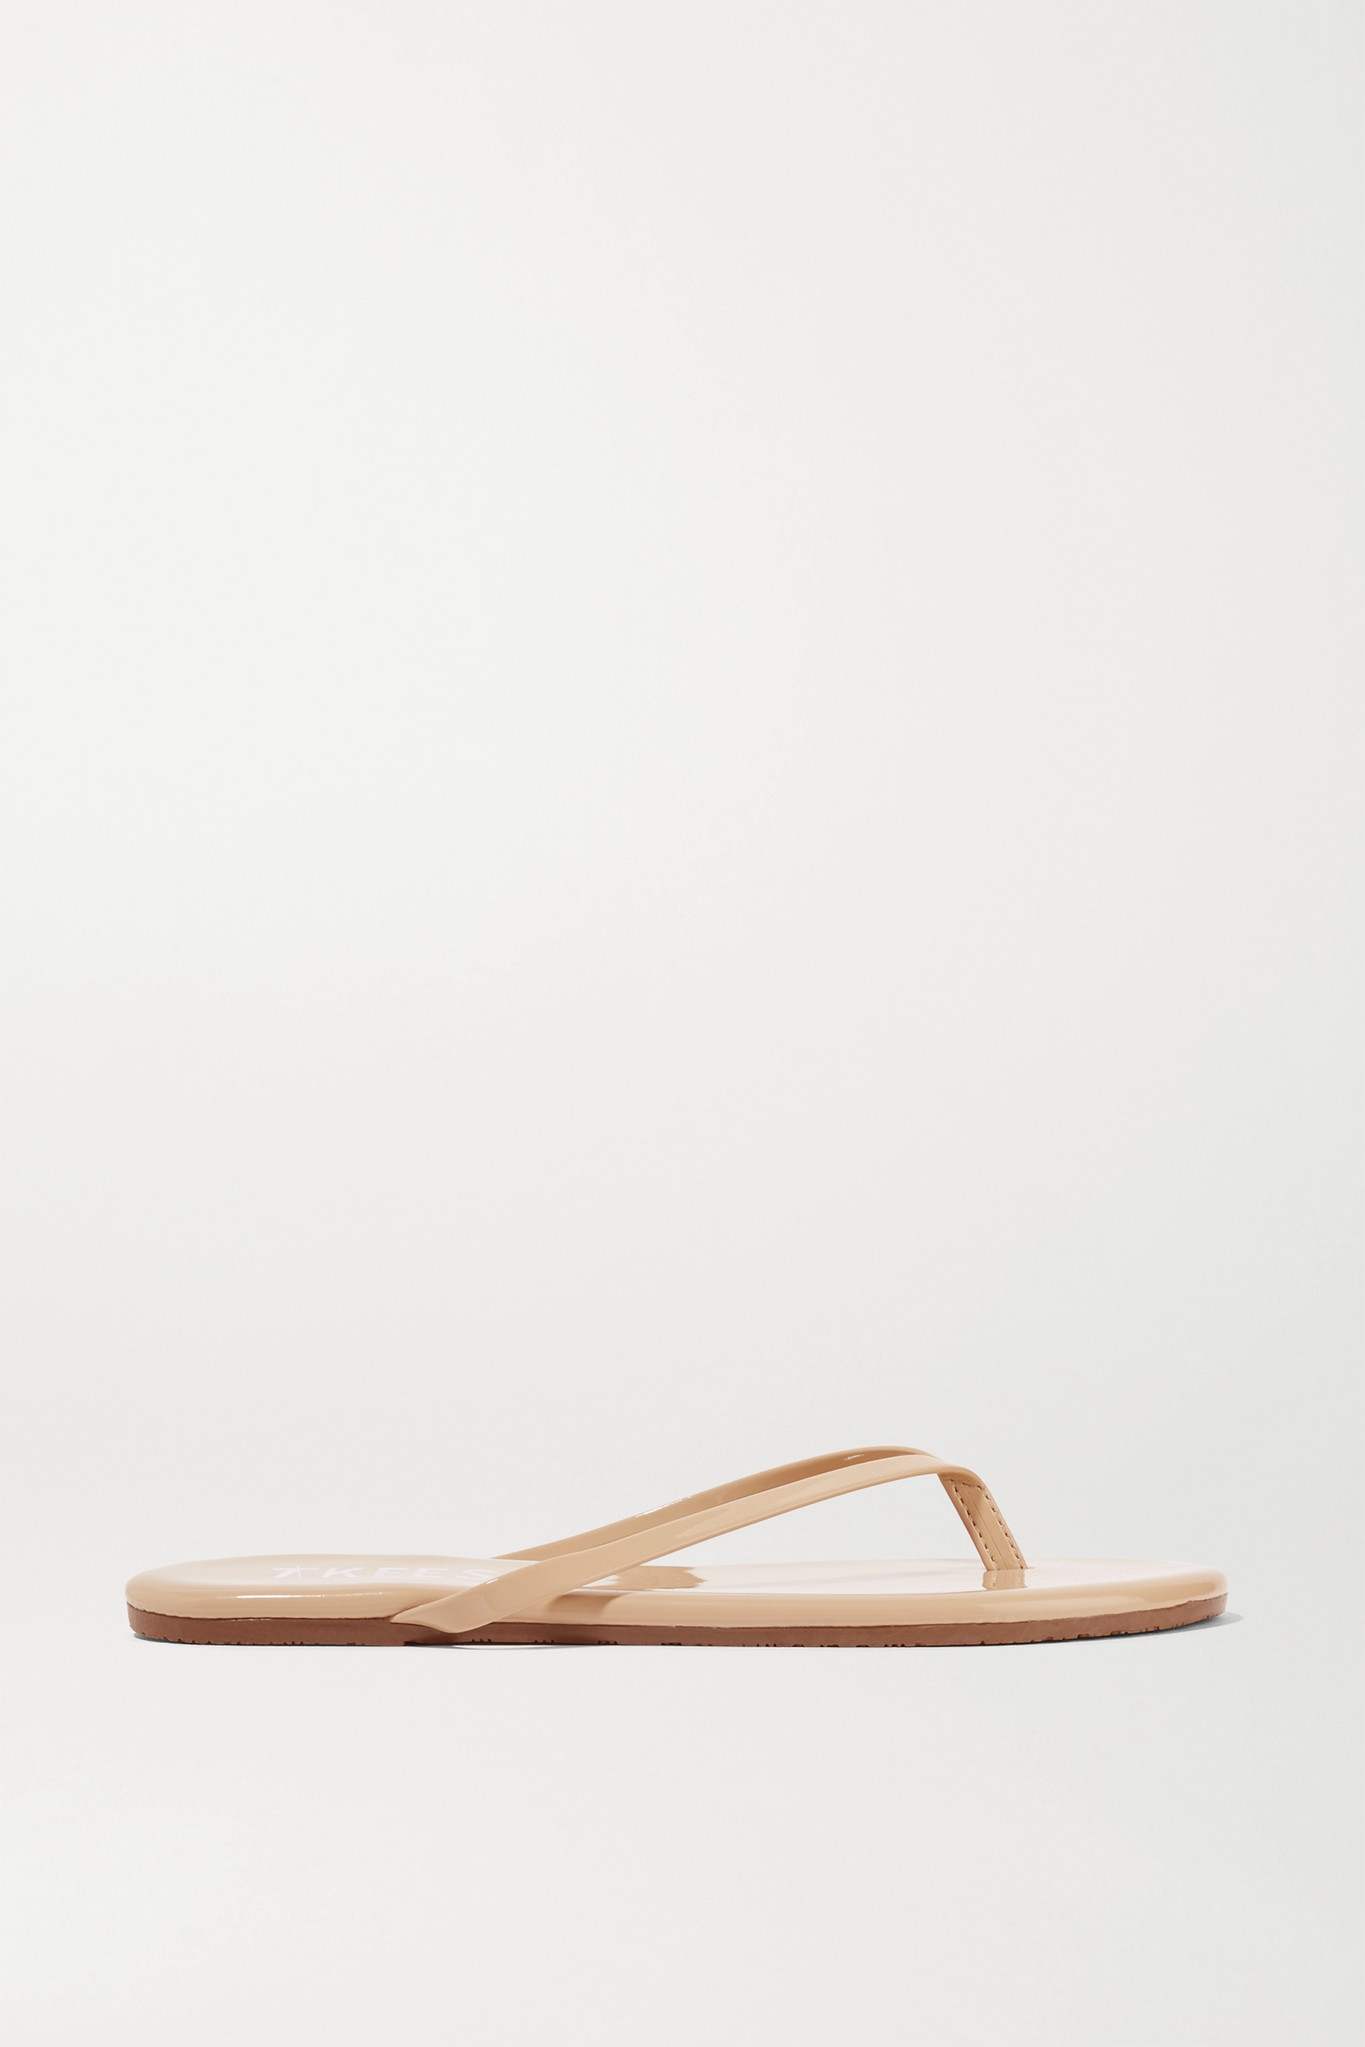 TKEES - Foundations Gloss Patent-leather Flip Flops - Neutrals - US9